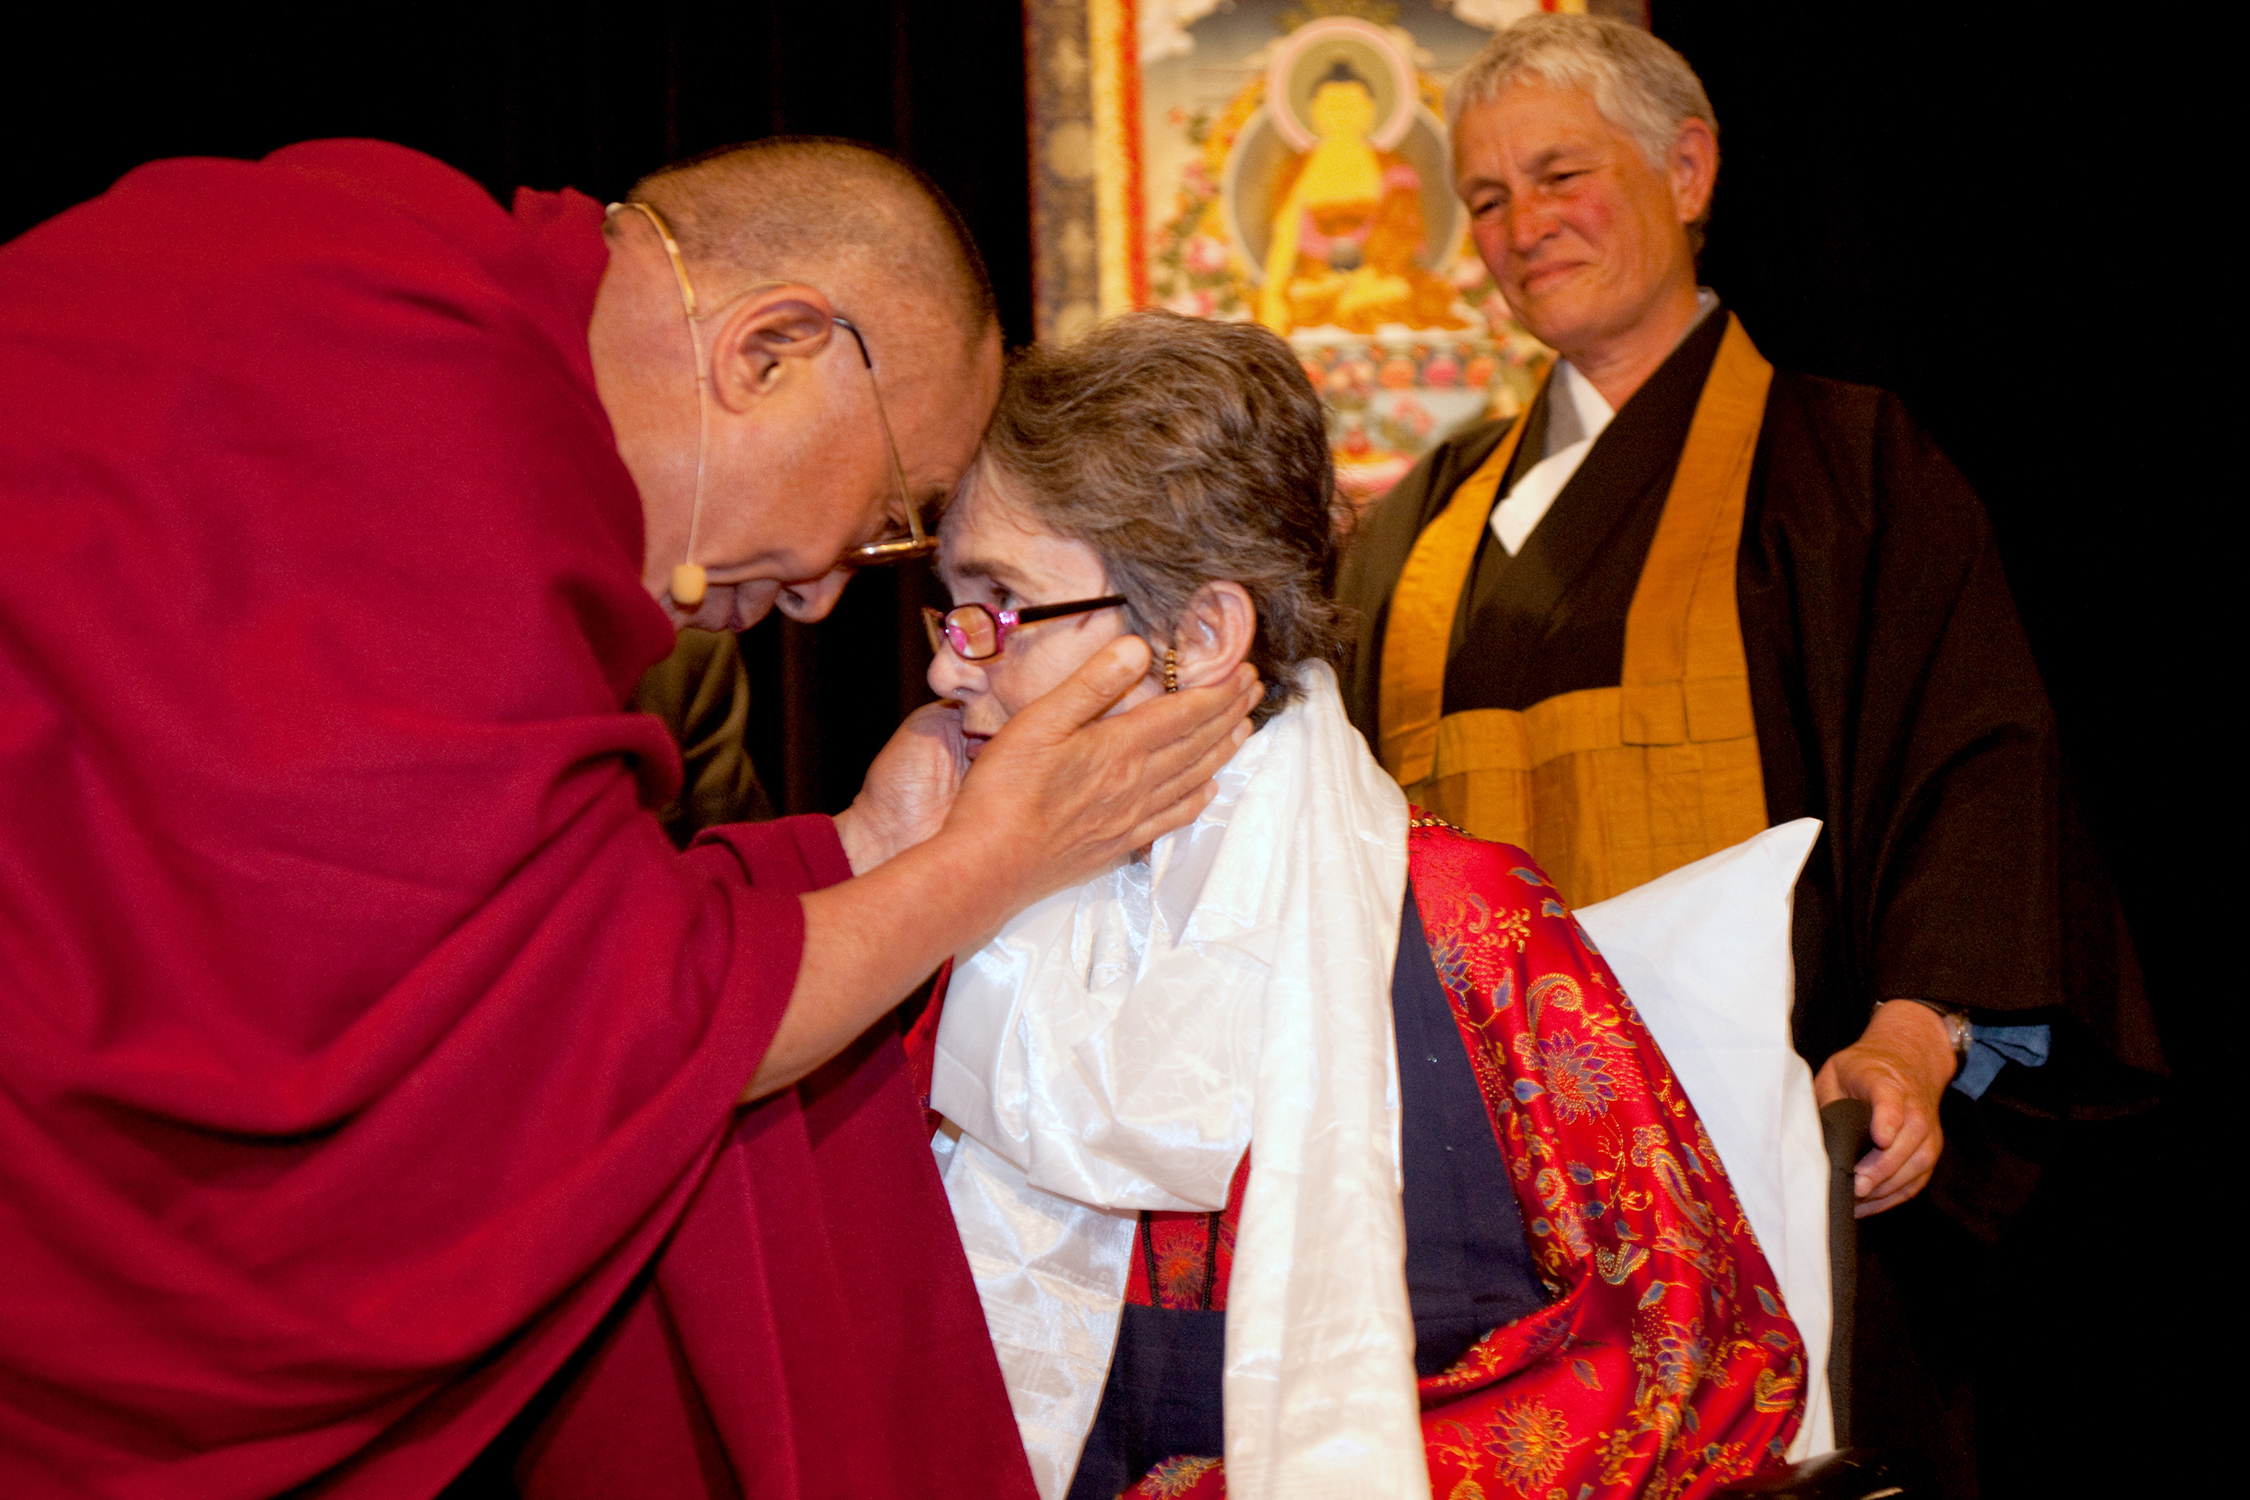 Dr. Grace Dammann with the Dalai Lama at the Unsung Heroes of Compassion award ceremony in 2009. Dammann was honored for her work as the co-founder of one of San Francisco's first HIV/AIDS clinics for poor people during the disease's deadliest era. She later survived a near-fatal head-on collision on the Golden Gate Bridge. The new feature-length documentary  States of Grace  by filmmakers Helen S. Cohen and Mark Lipman chronicles her journey following the accident. Photo credit: Michael Yamashita